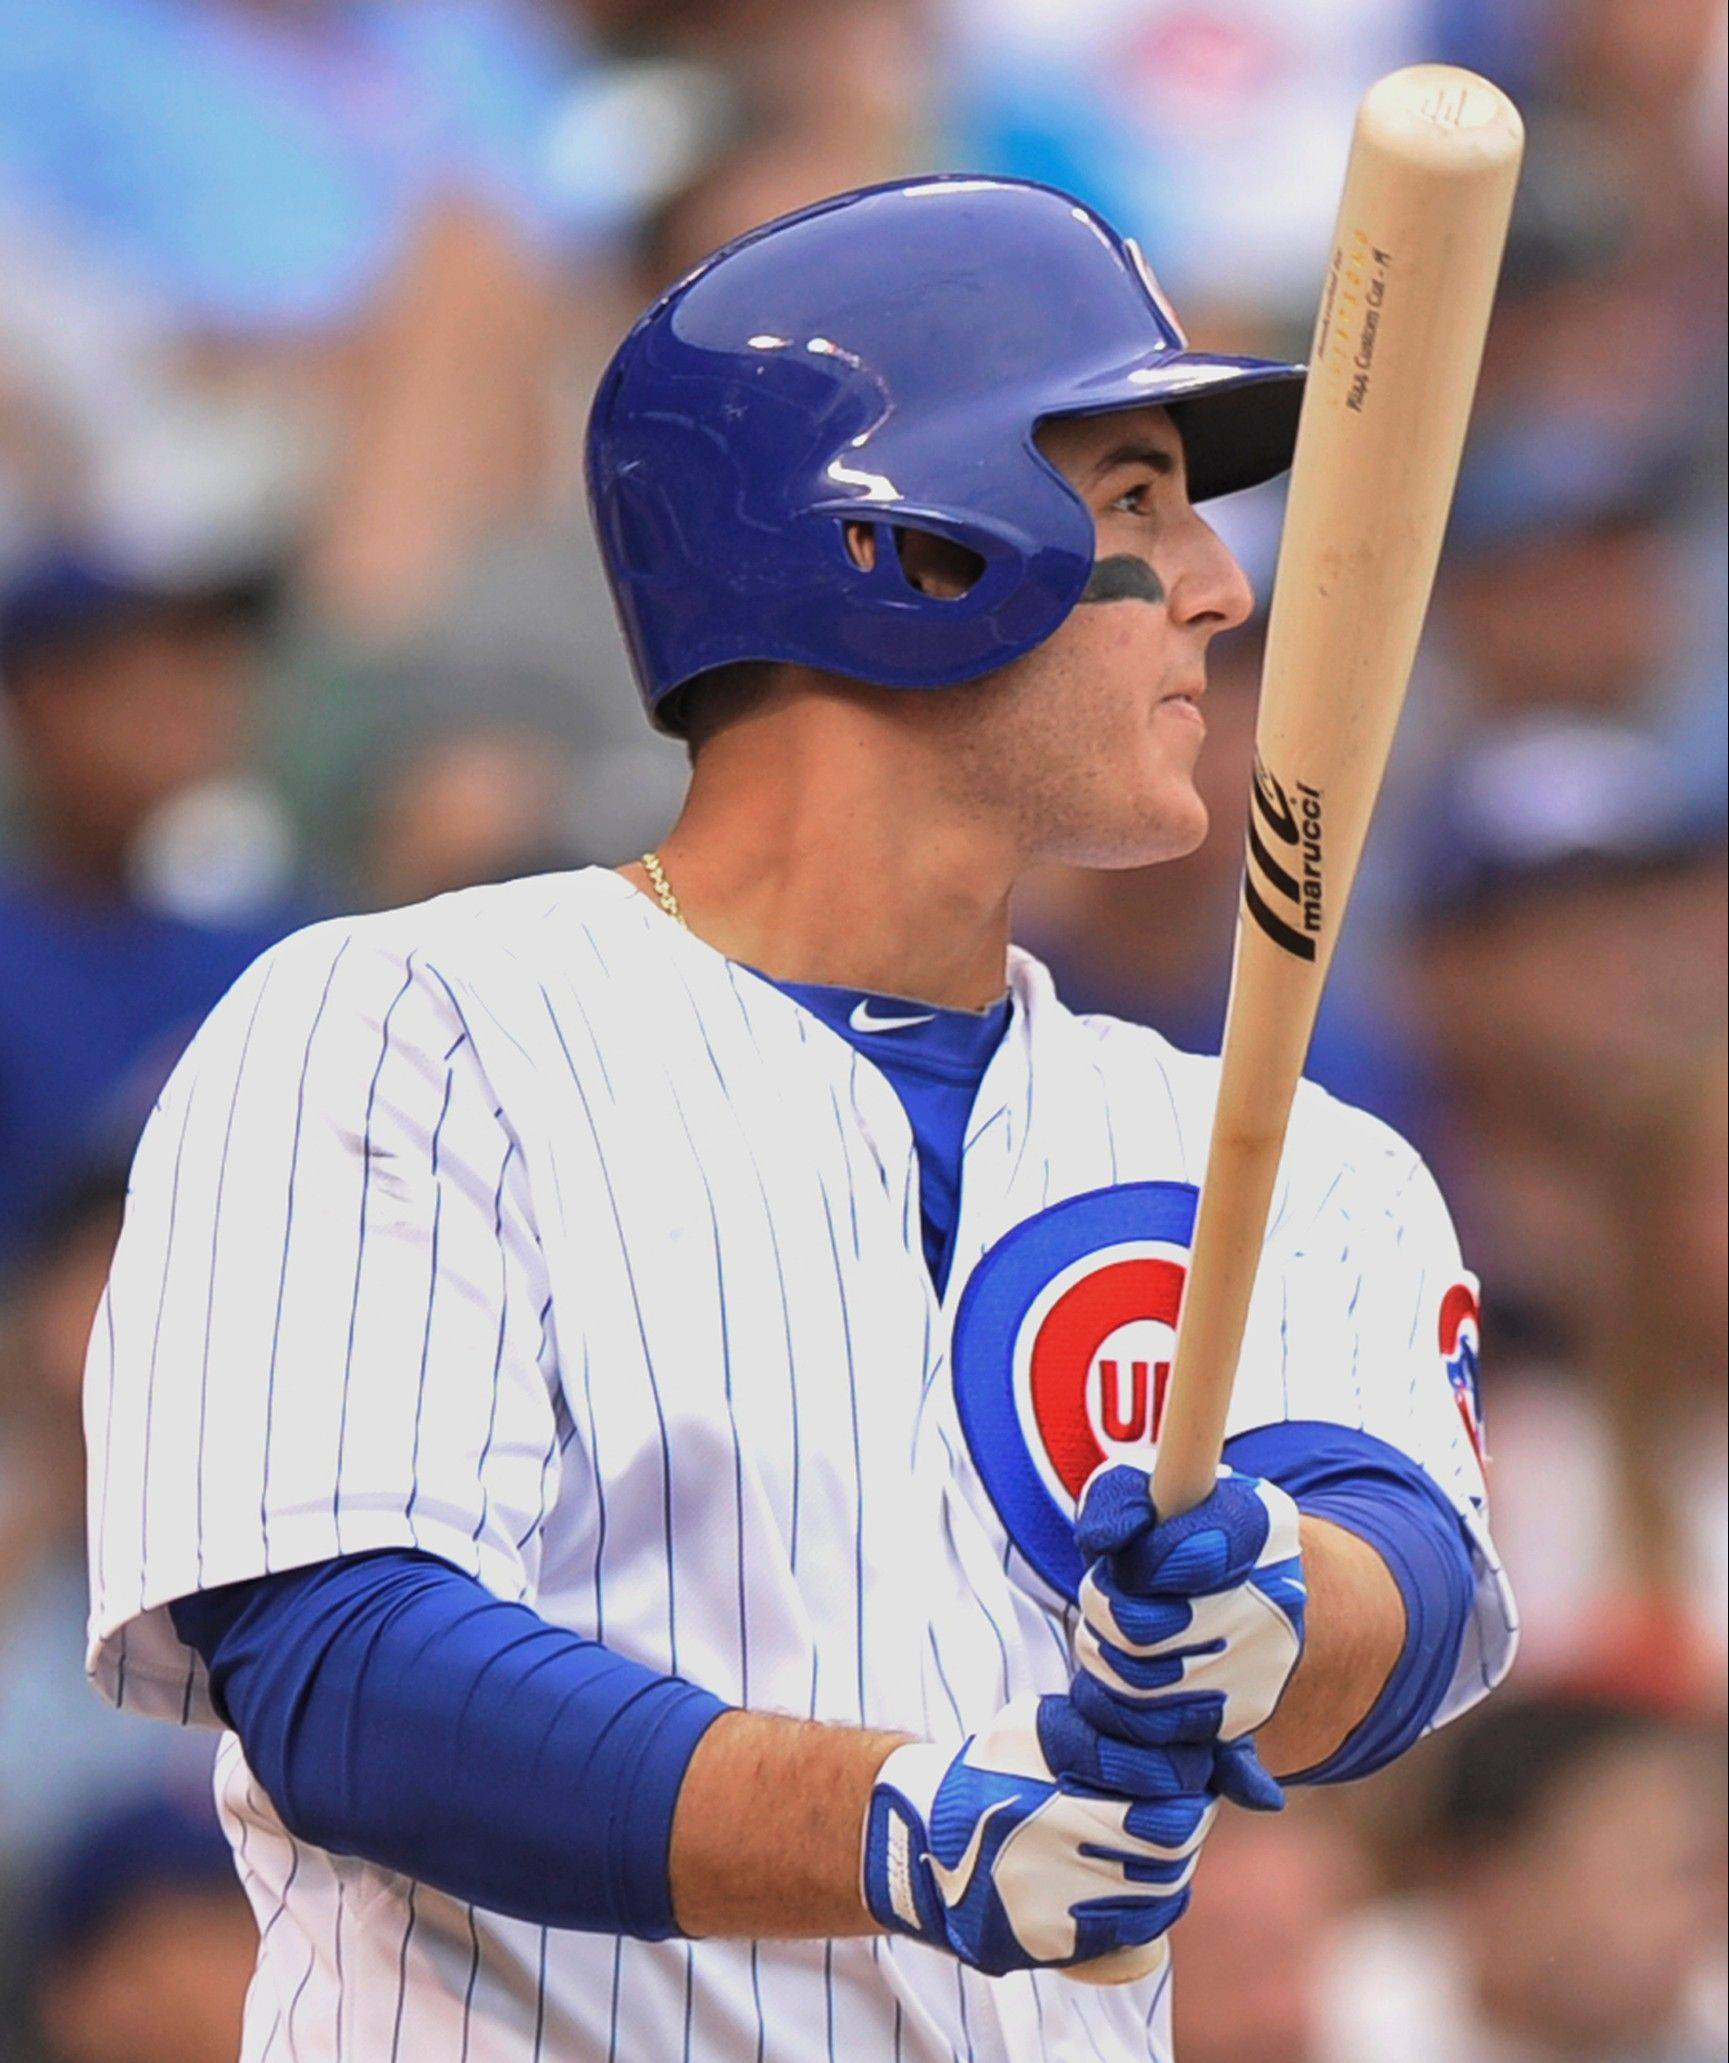 Rizzo proving to be the real deal